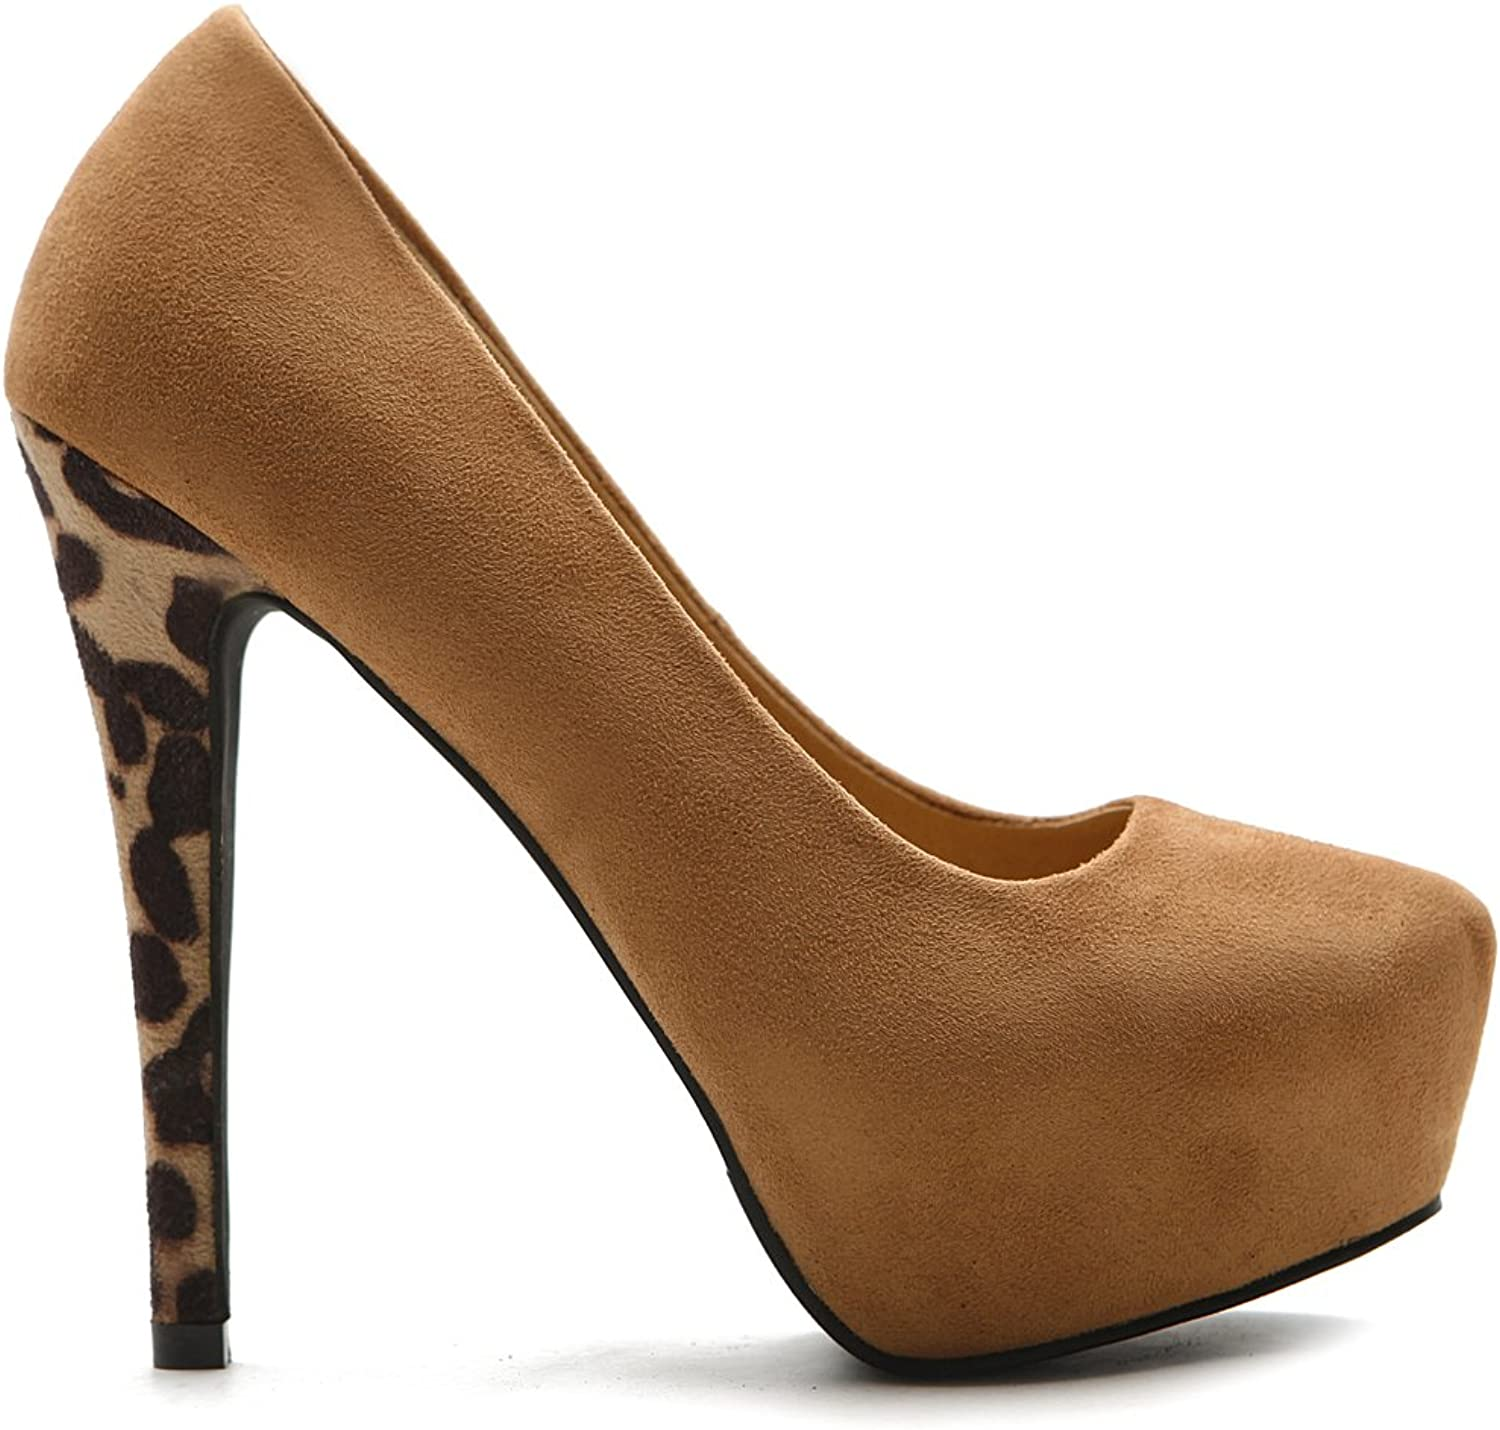 Ollio Women's Platform shoes Faux Suede Stiletto Leopard High Heels Multi color Pump